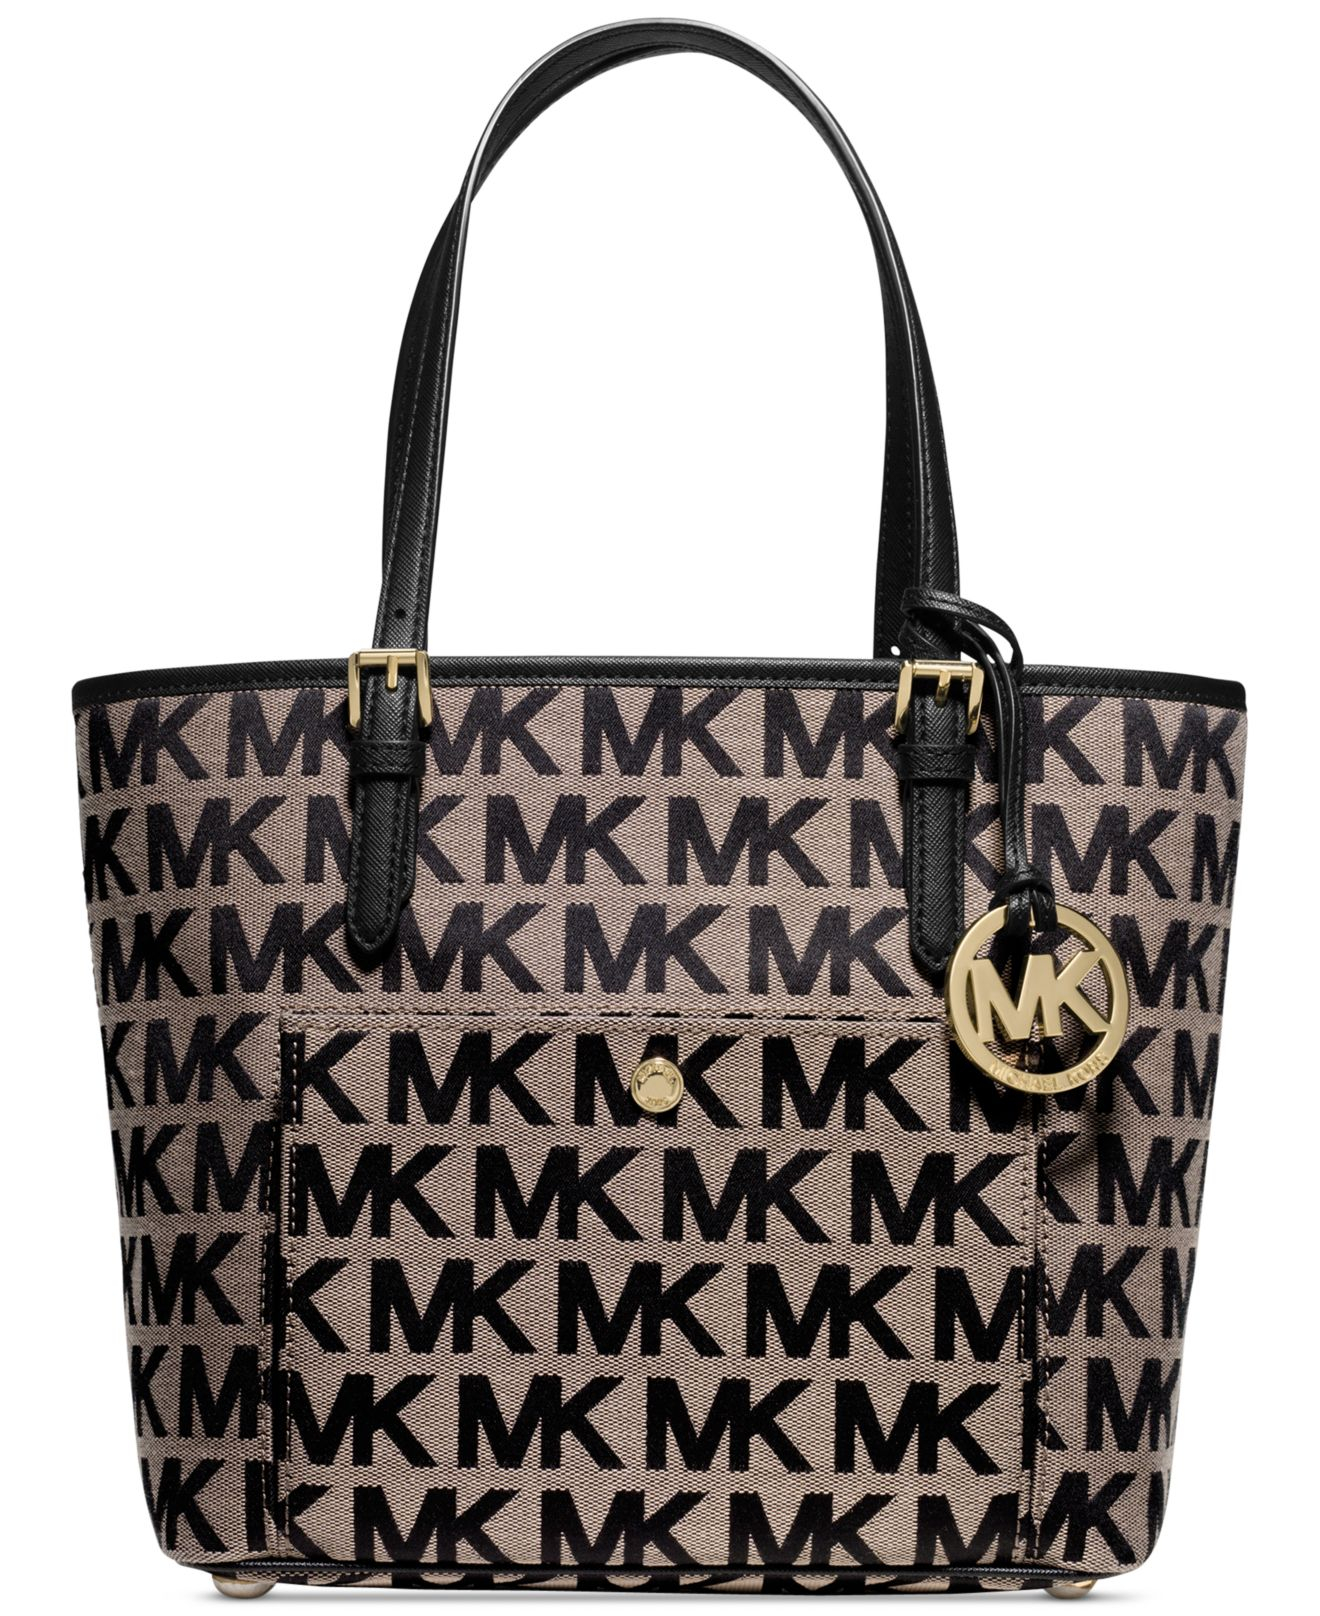 b12e61e6453f ... tote 535d1 71343 switzerland lyst michael kors michael signature jet set  item medium snap 7da27 92930 ...